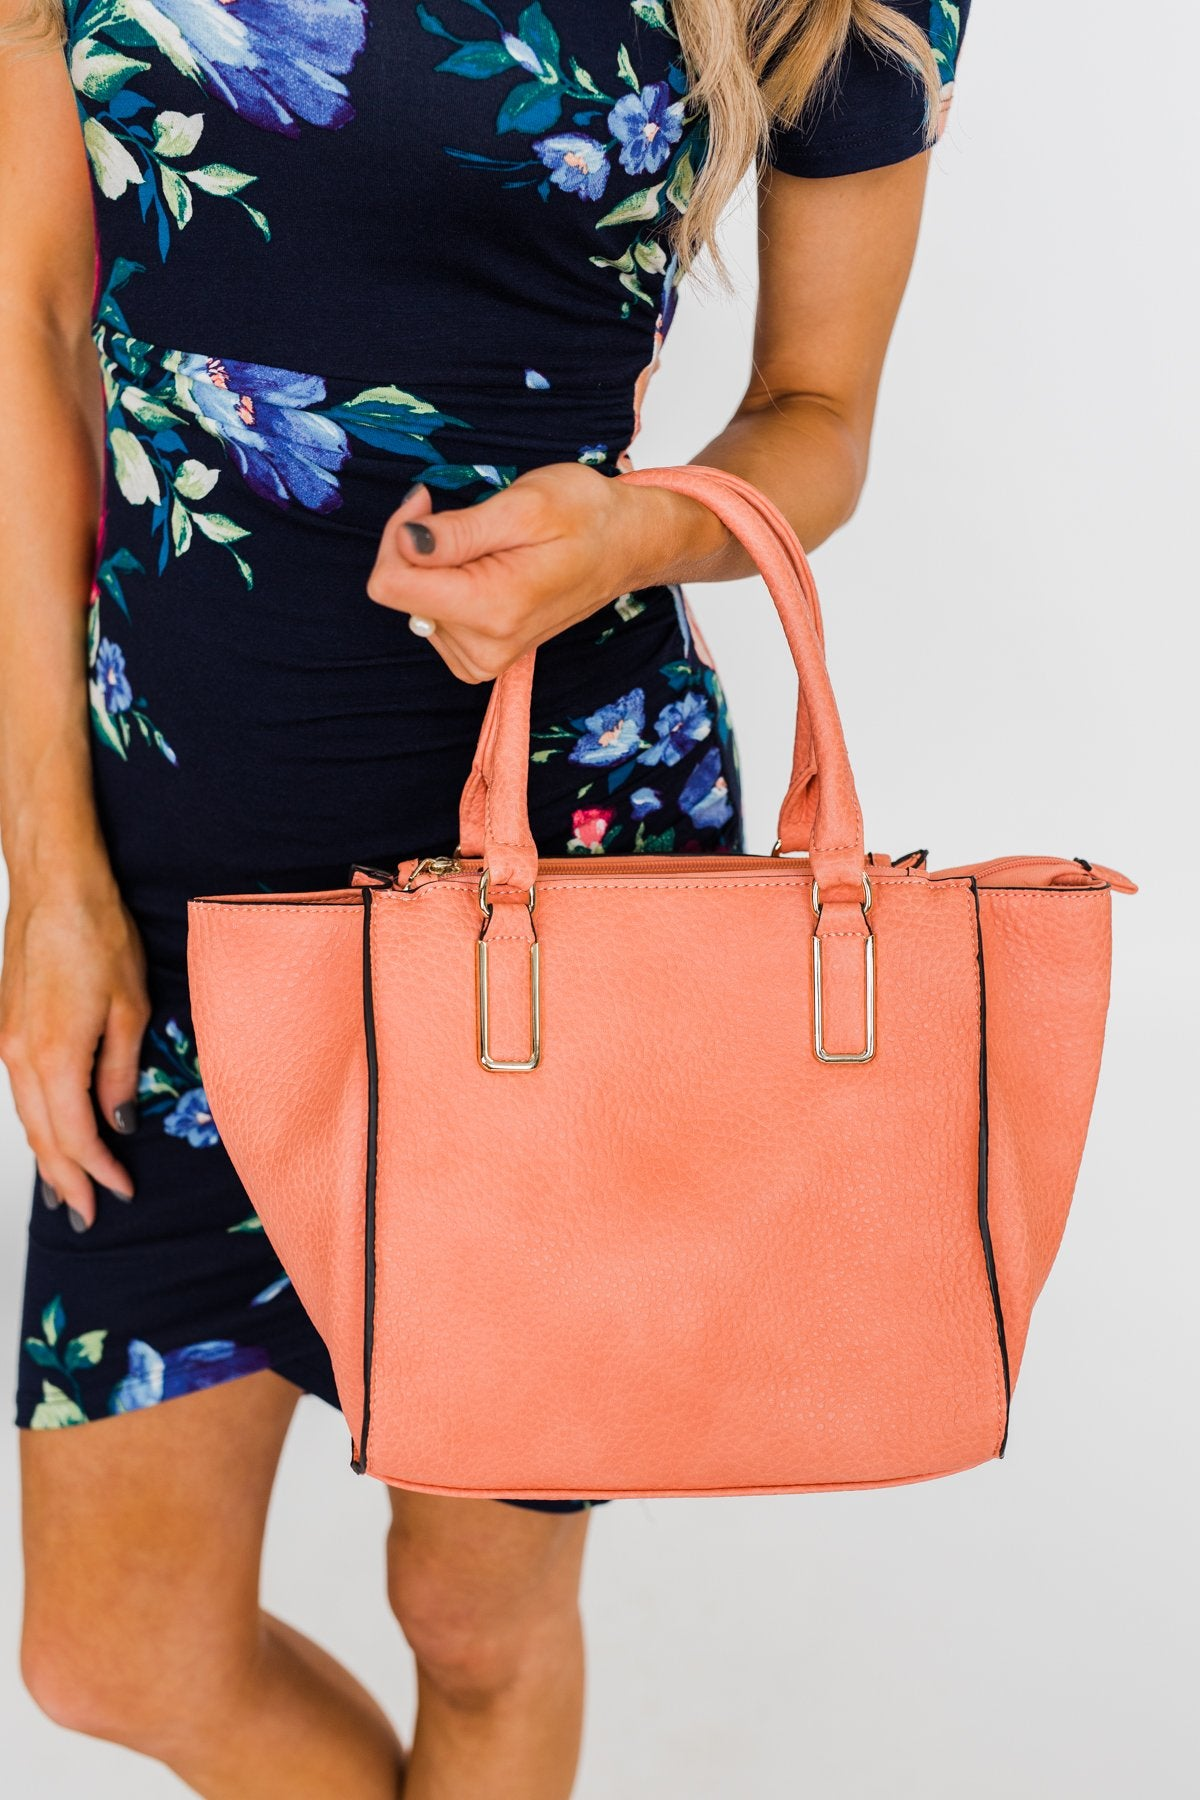 Stylish Handbag- Peach